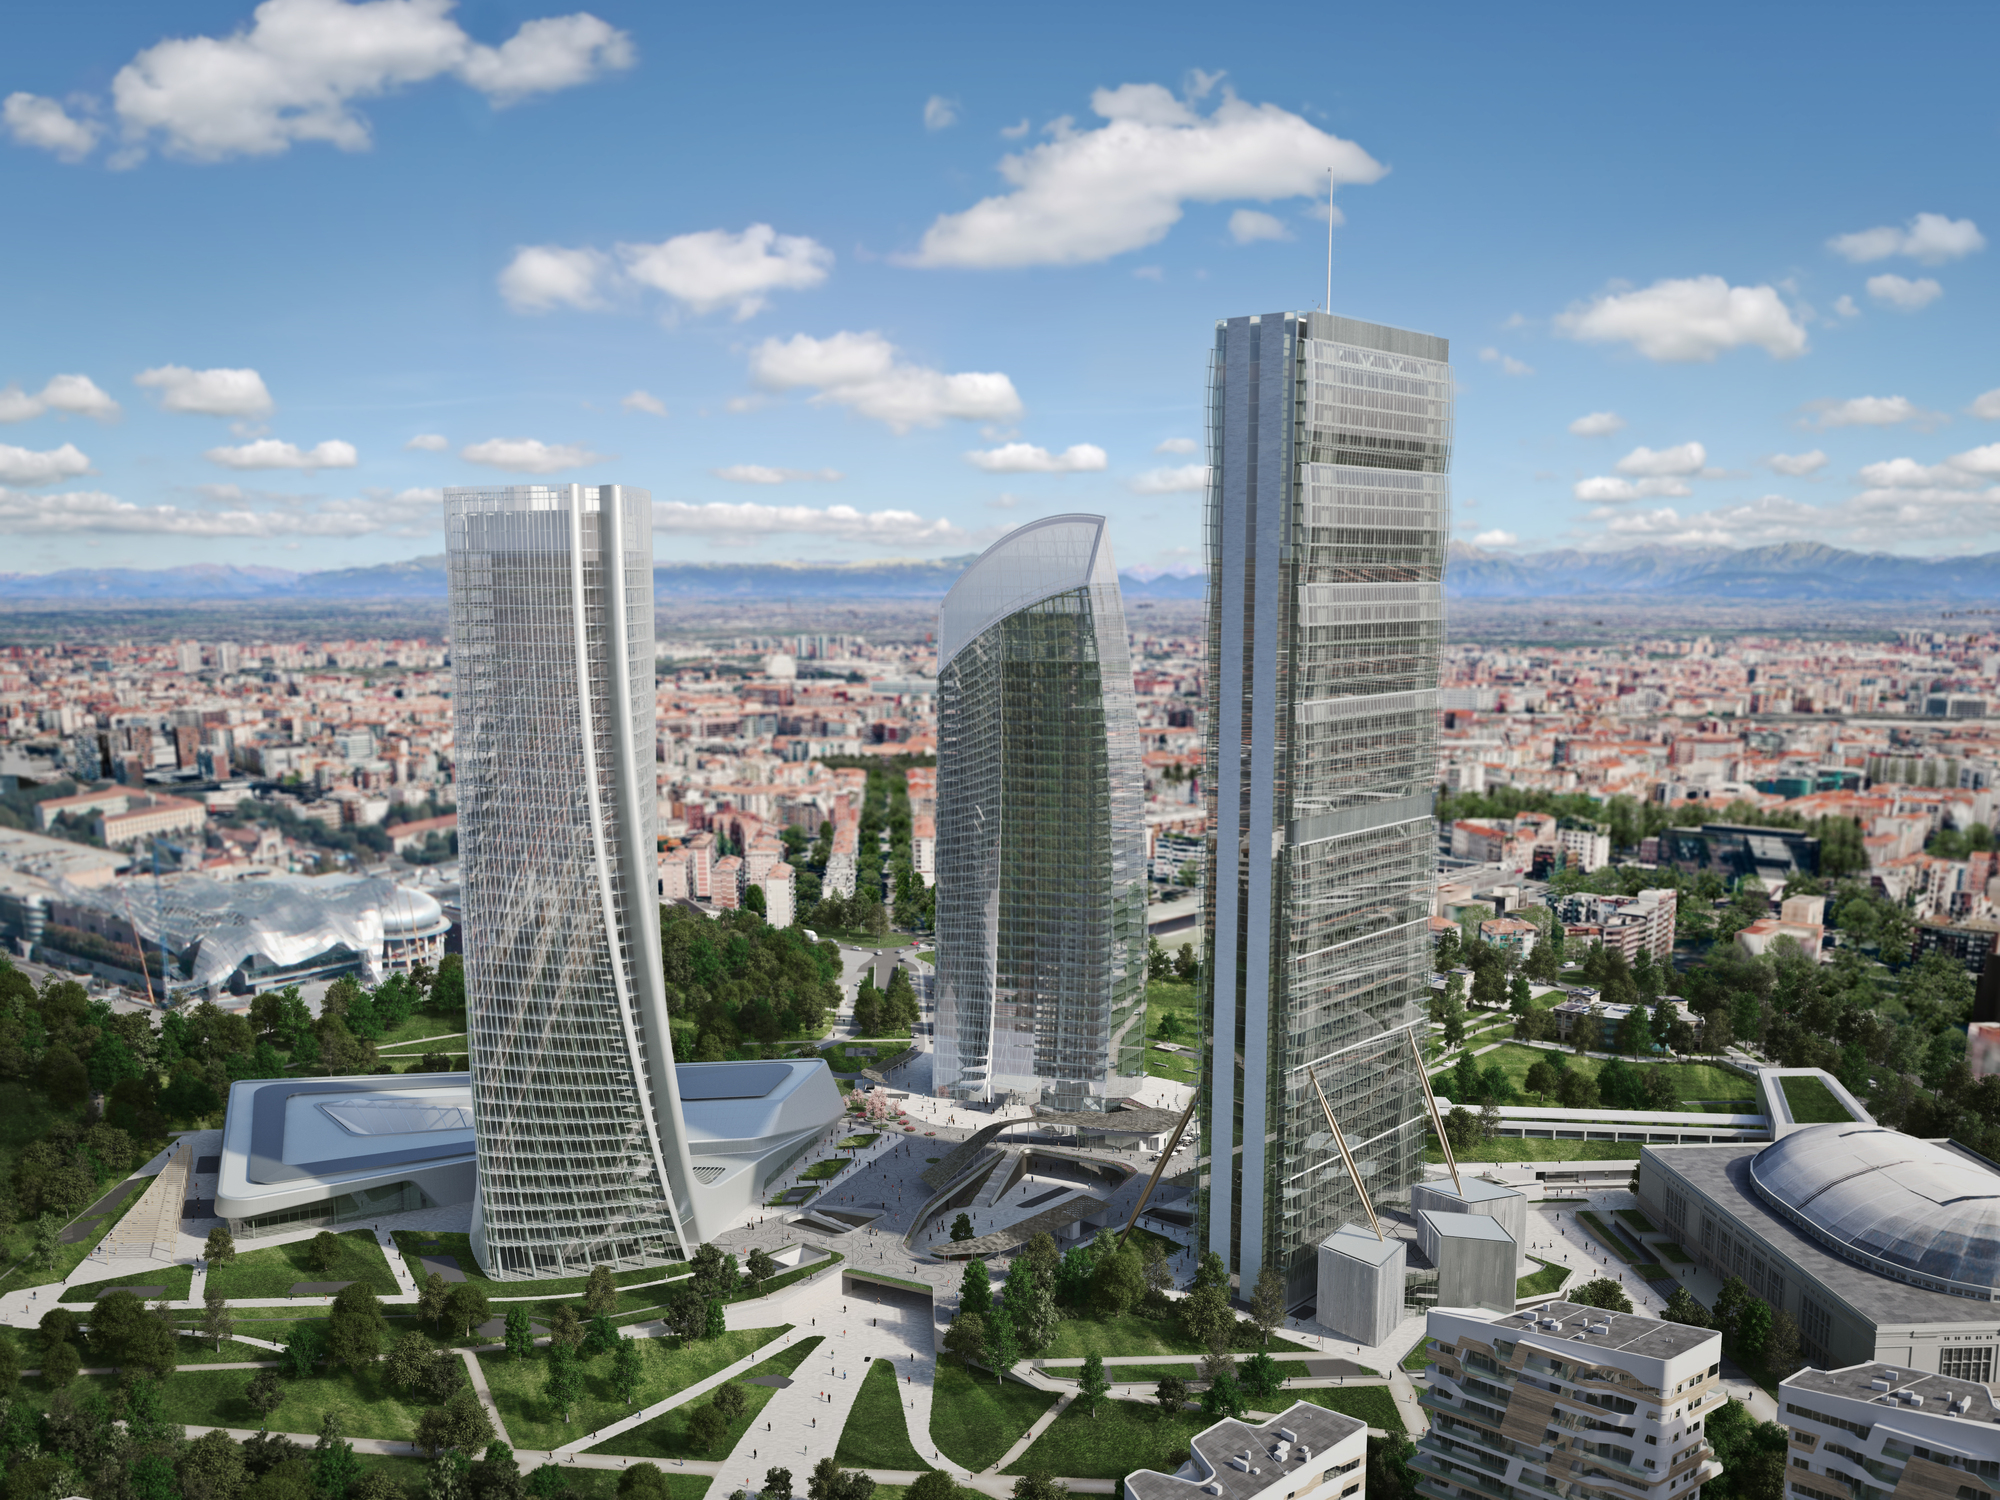 Zaha hadid architects 39 generali tower tops out in milan for Art design milano